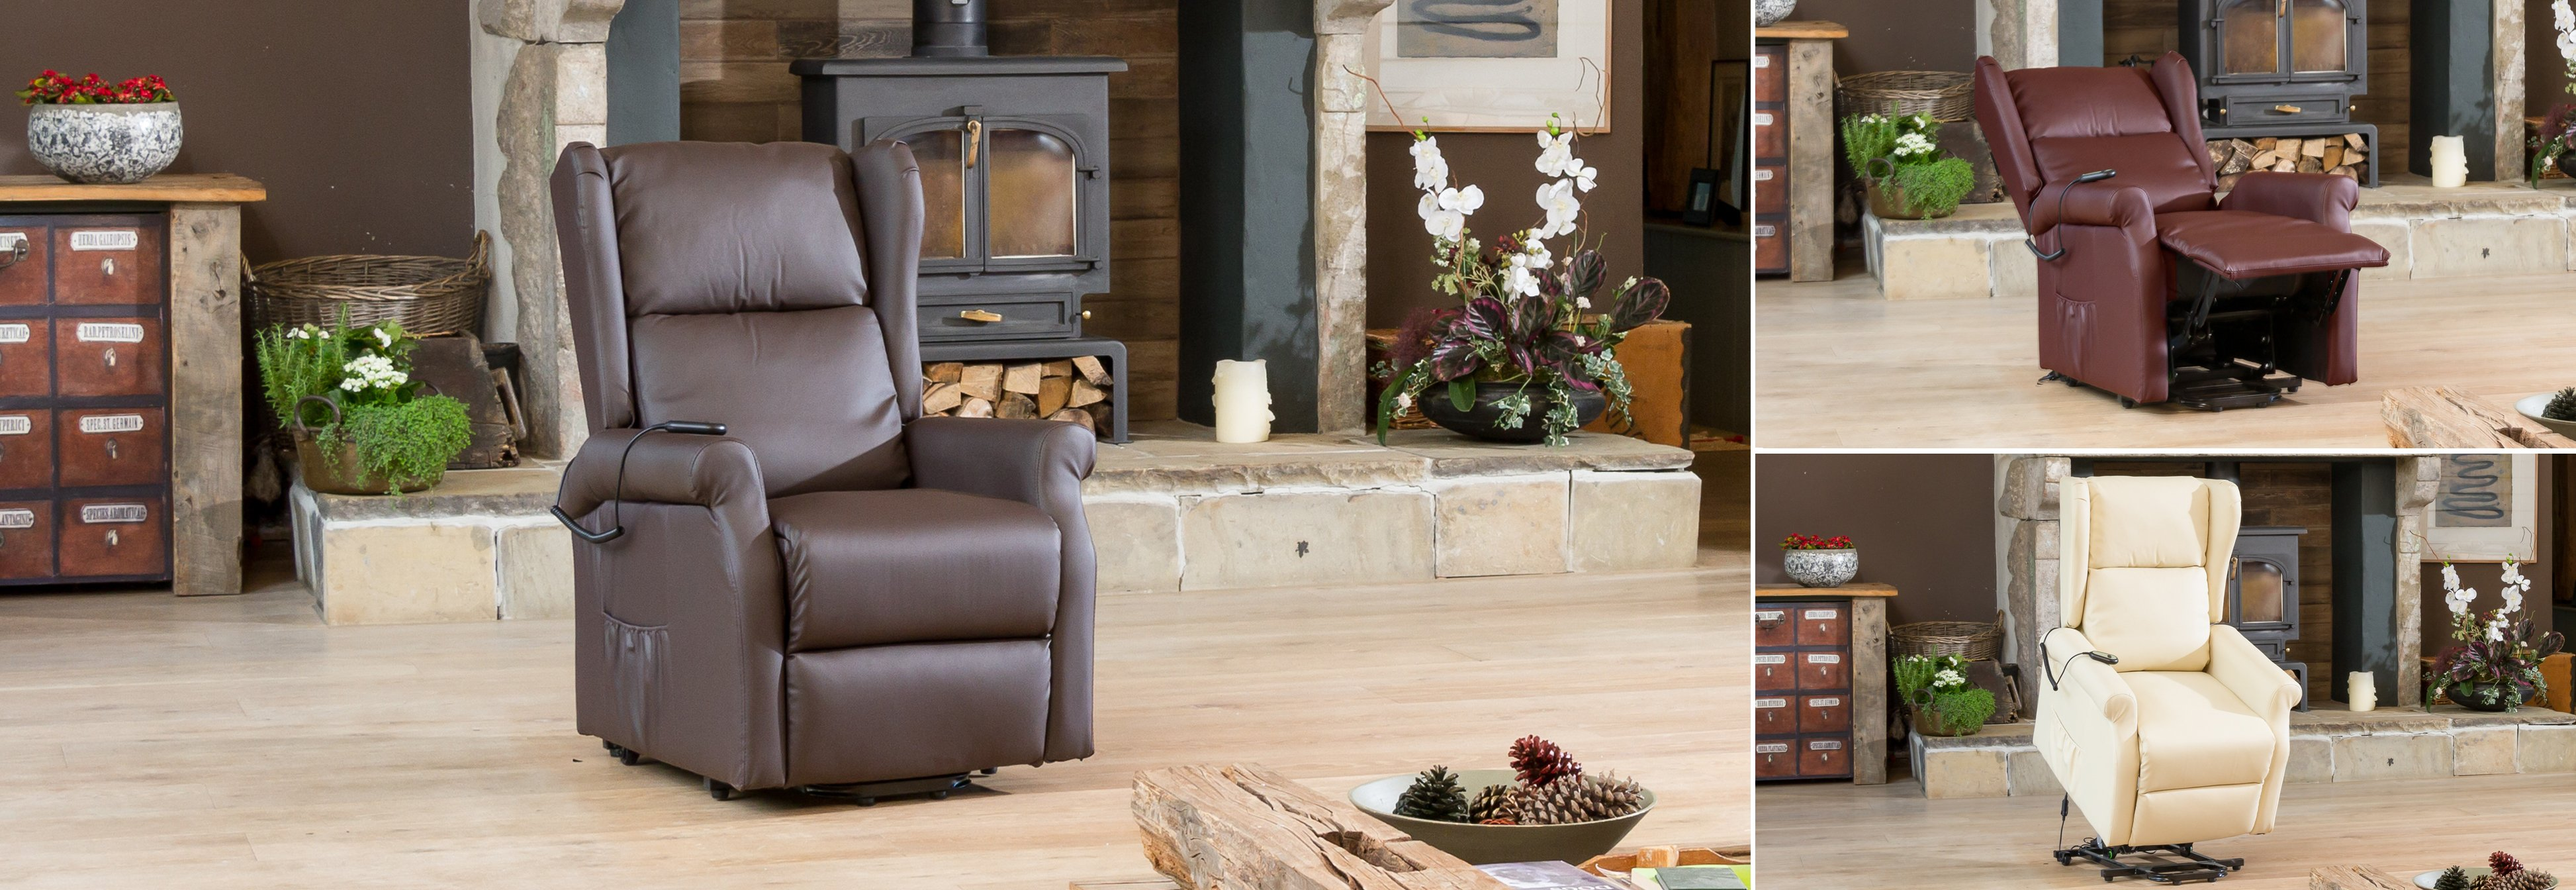 Verwood Riser Recliner Chair with Heat and Massage Brown